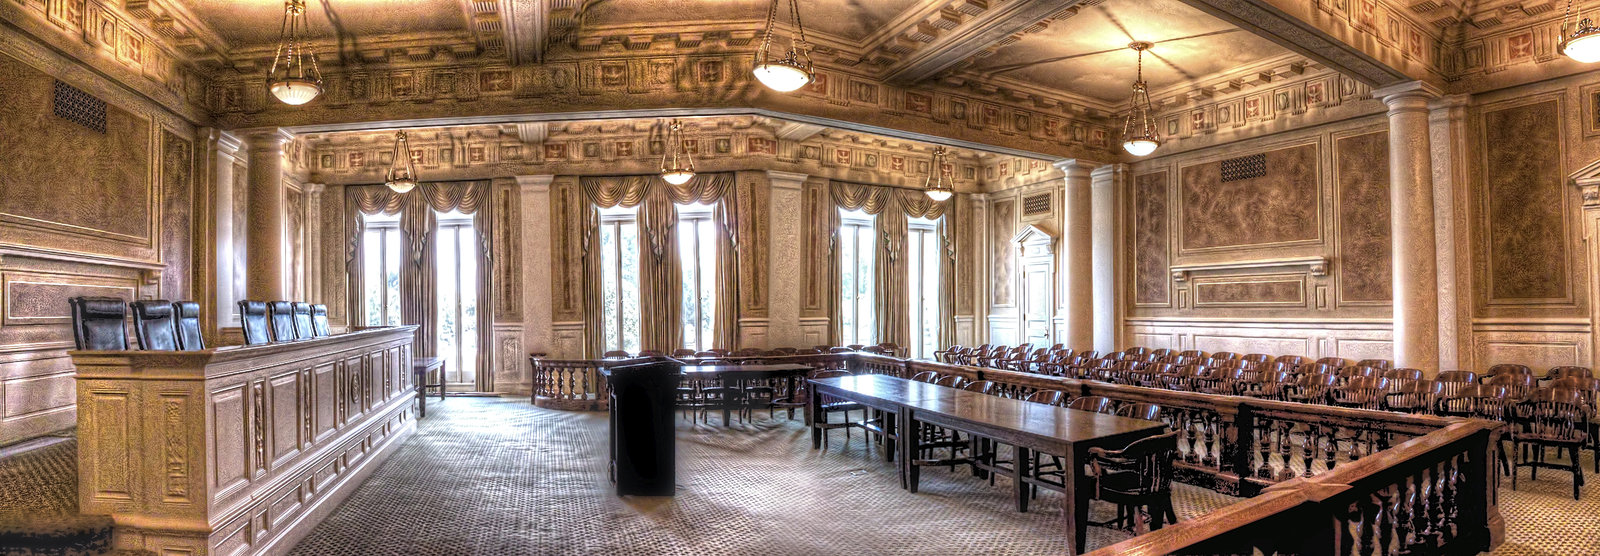 capital_courtroom_pano_hdr_by_joelht74-d2xoab3